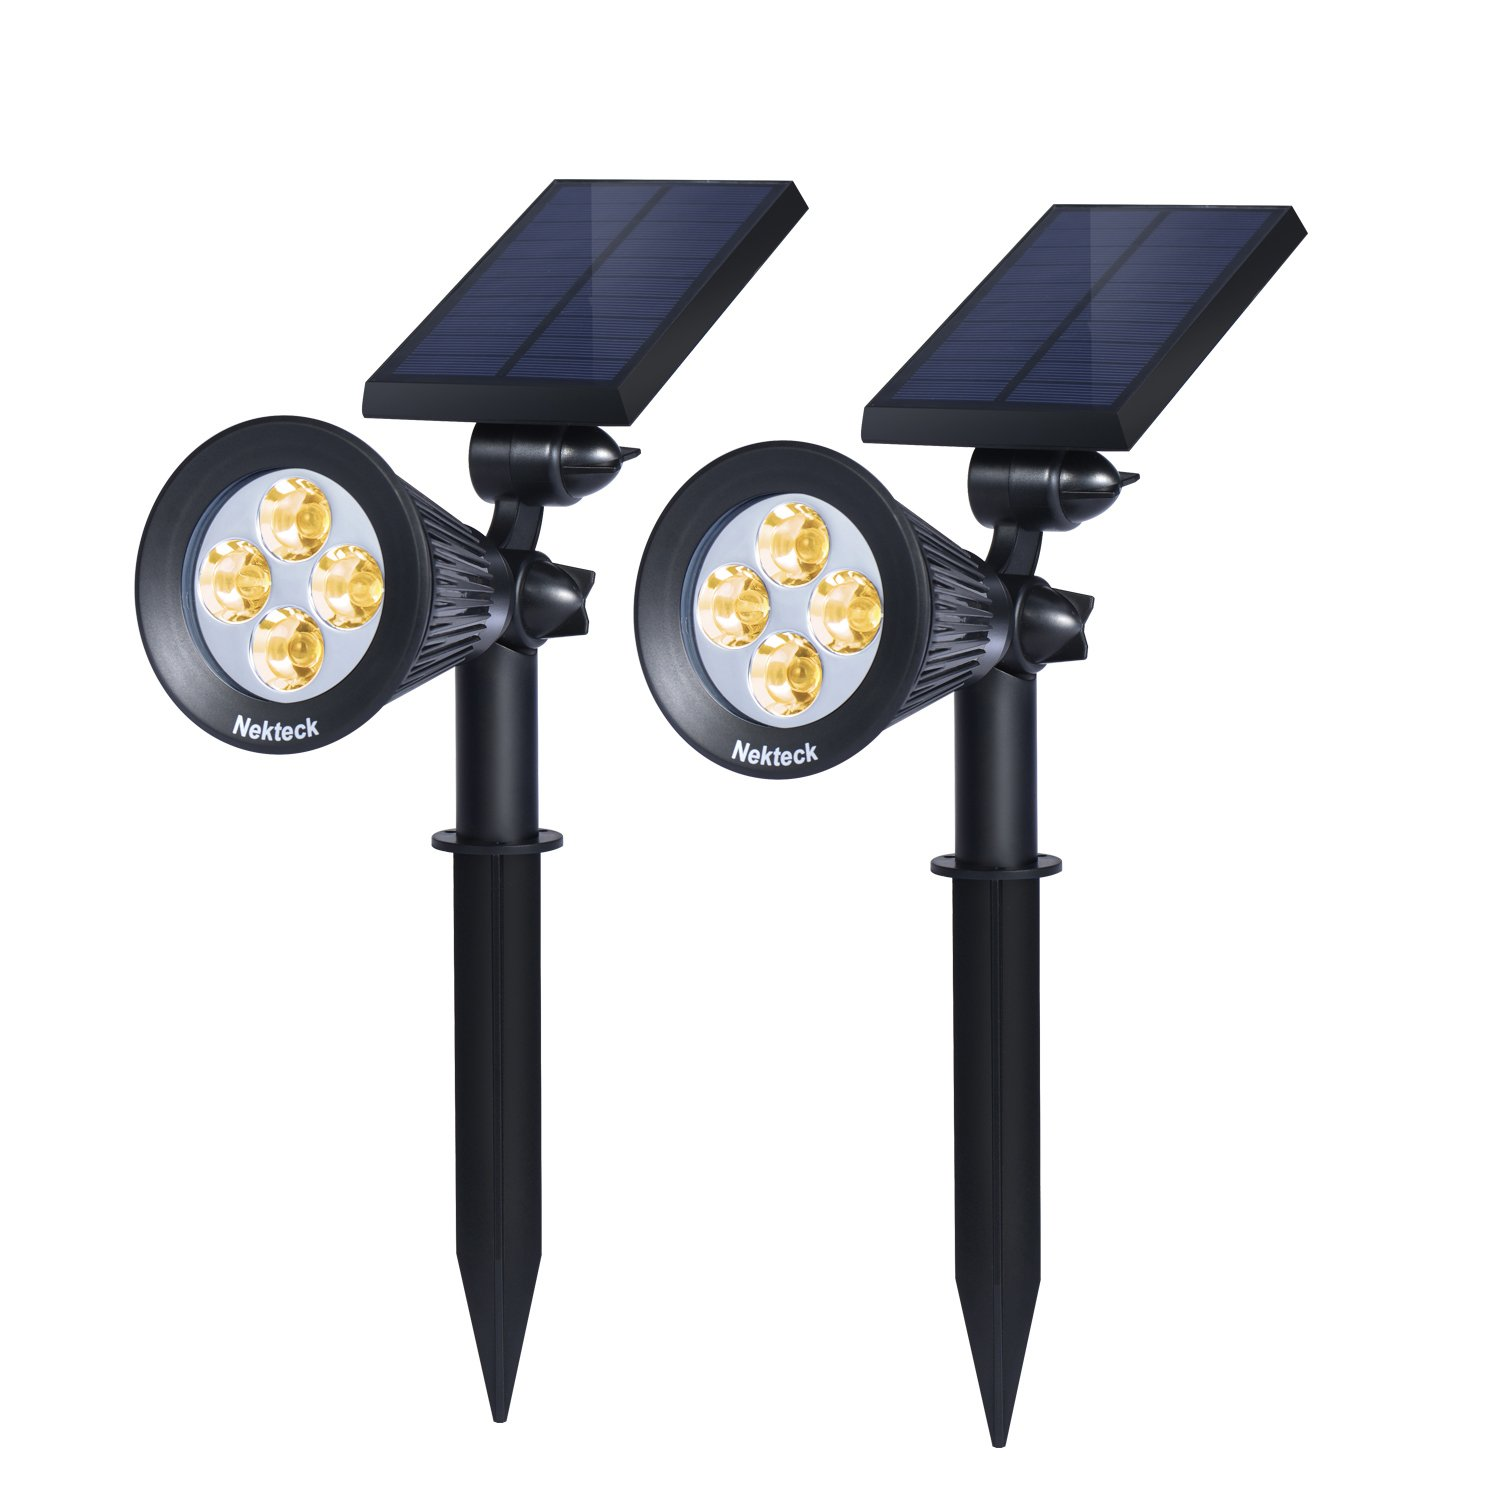 Nekteck Solar Powered Garden Spotlight - Outdoor Spot Light for Walkways, Landscaping, Security, Etc. - Ground or Wall Mount Options (2 Pack, Warm White - 2300K) by Nekteck